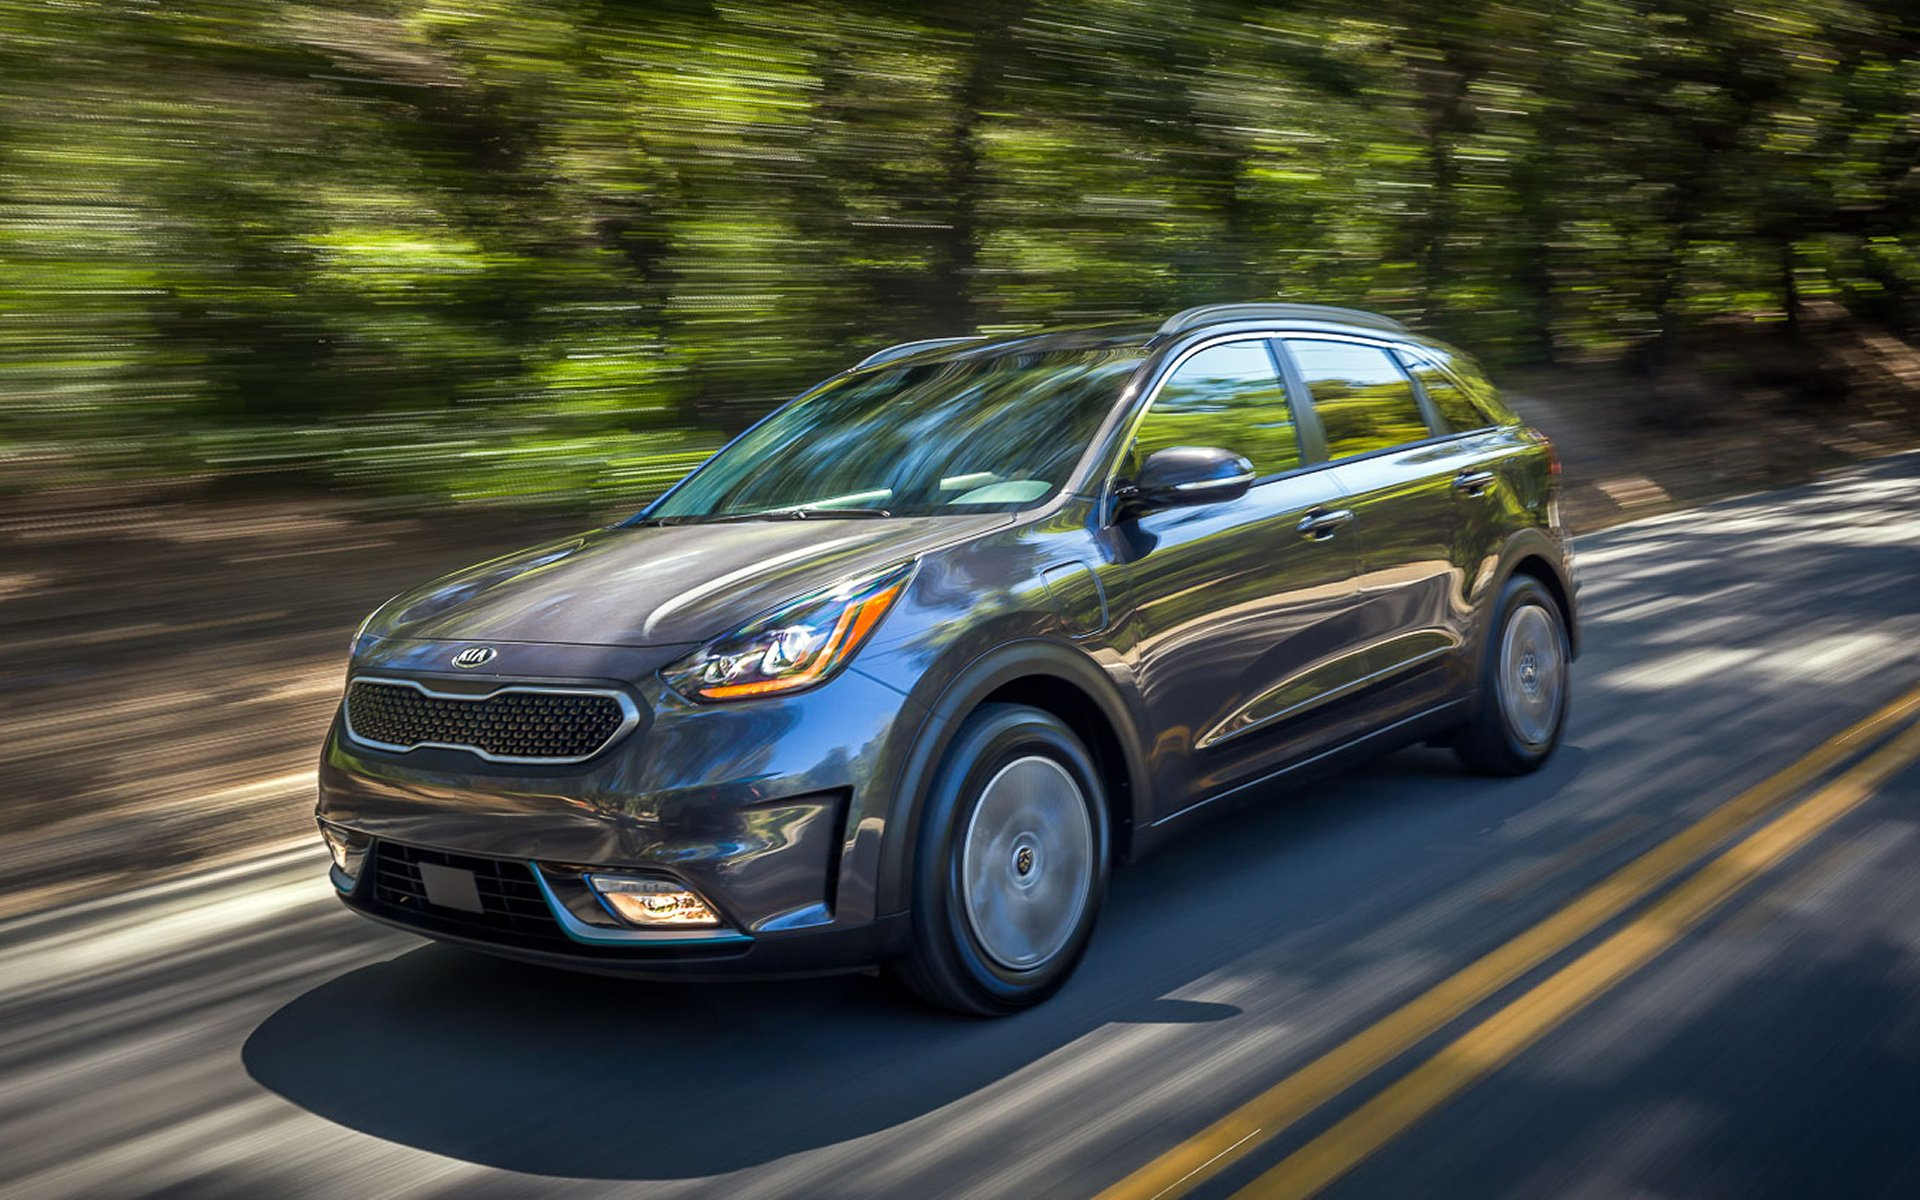 Michigan - 2018 KIA NIRO Plug-In Hybrid's Overview